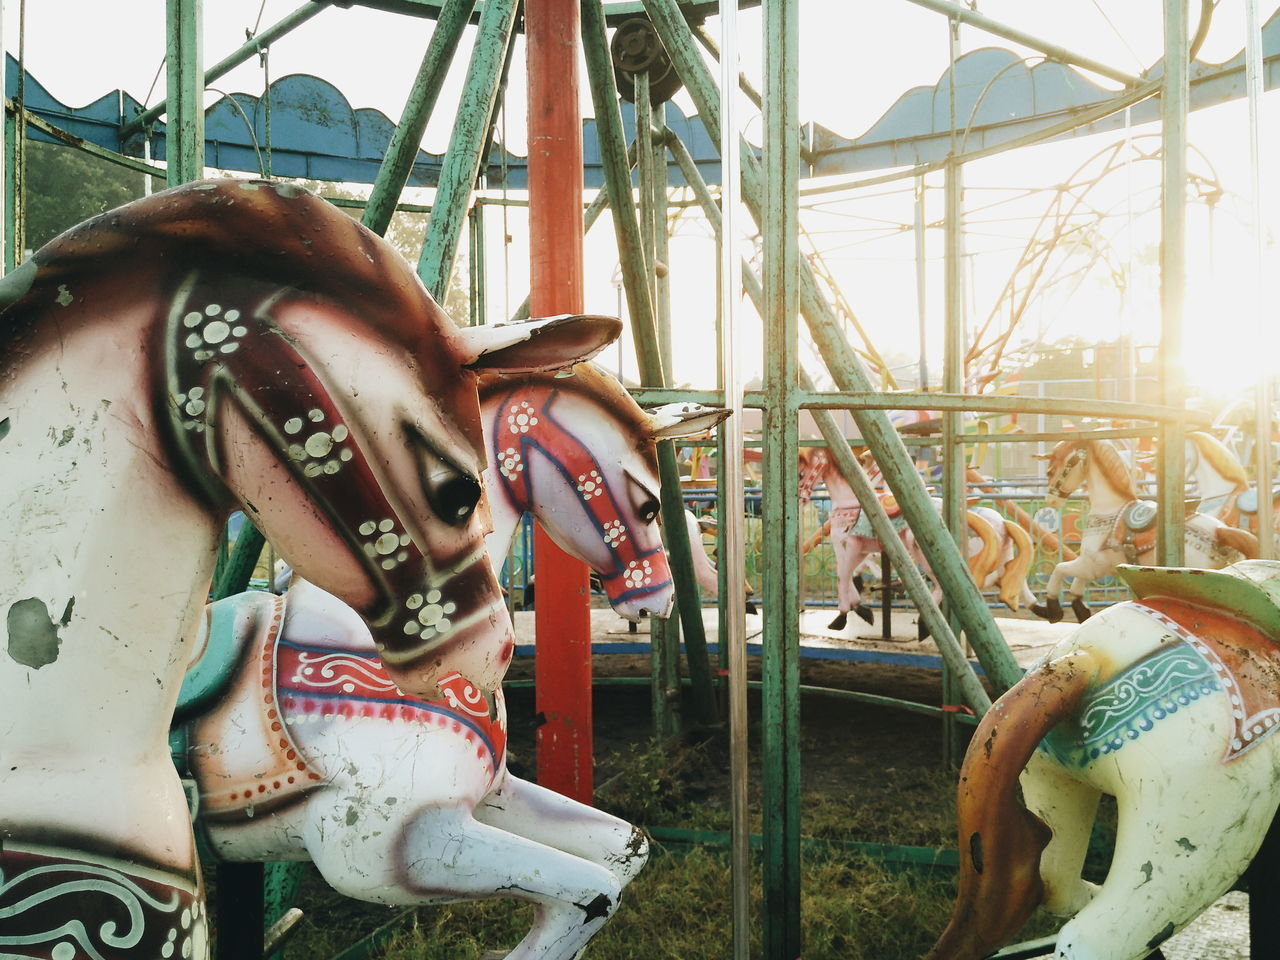 amusement park, horse, carousel horses, carousel, amusement park ride, animal representation, arts culture and entertainment, outdoor play equipment, no people, day, merry-go-round, childhood, outdoors, close-up, animal themes